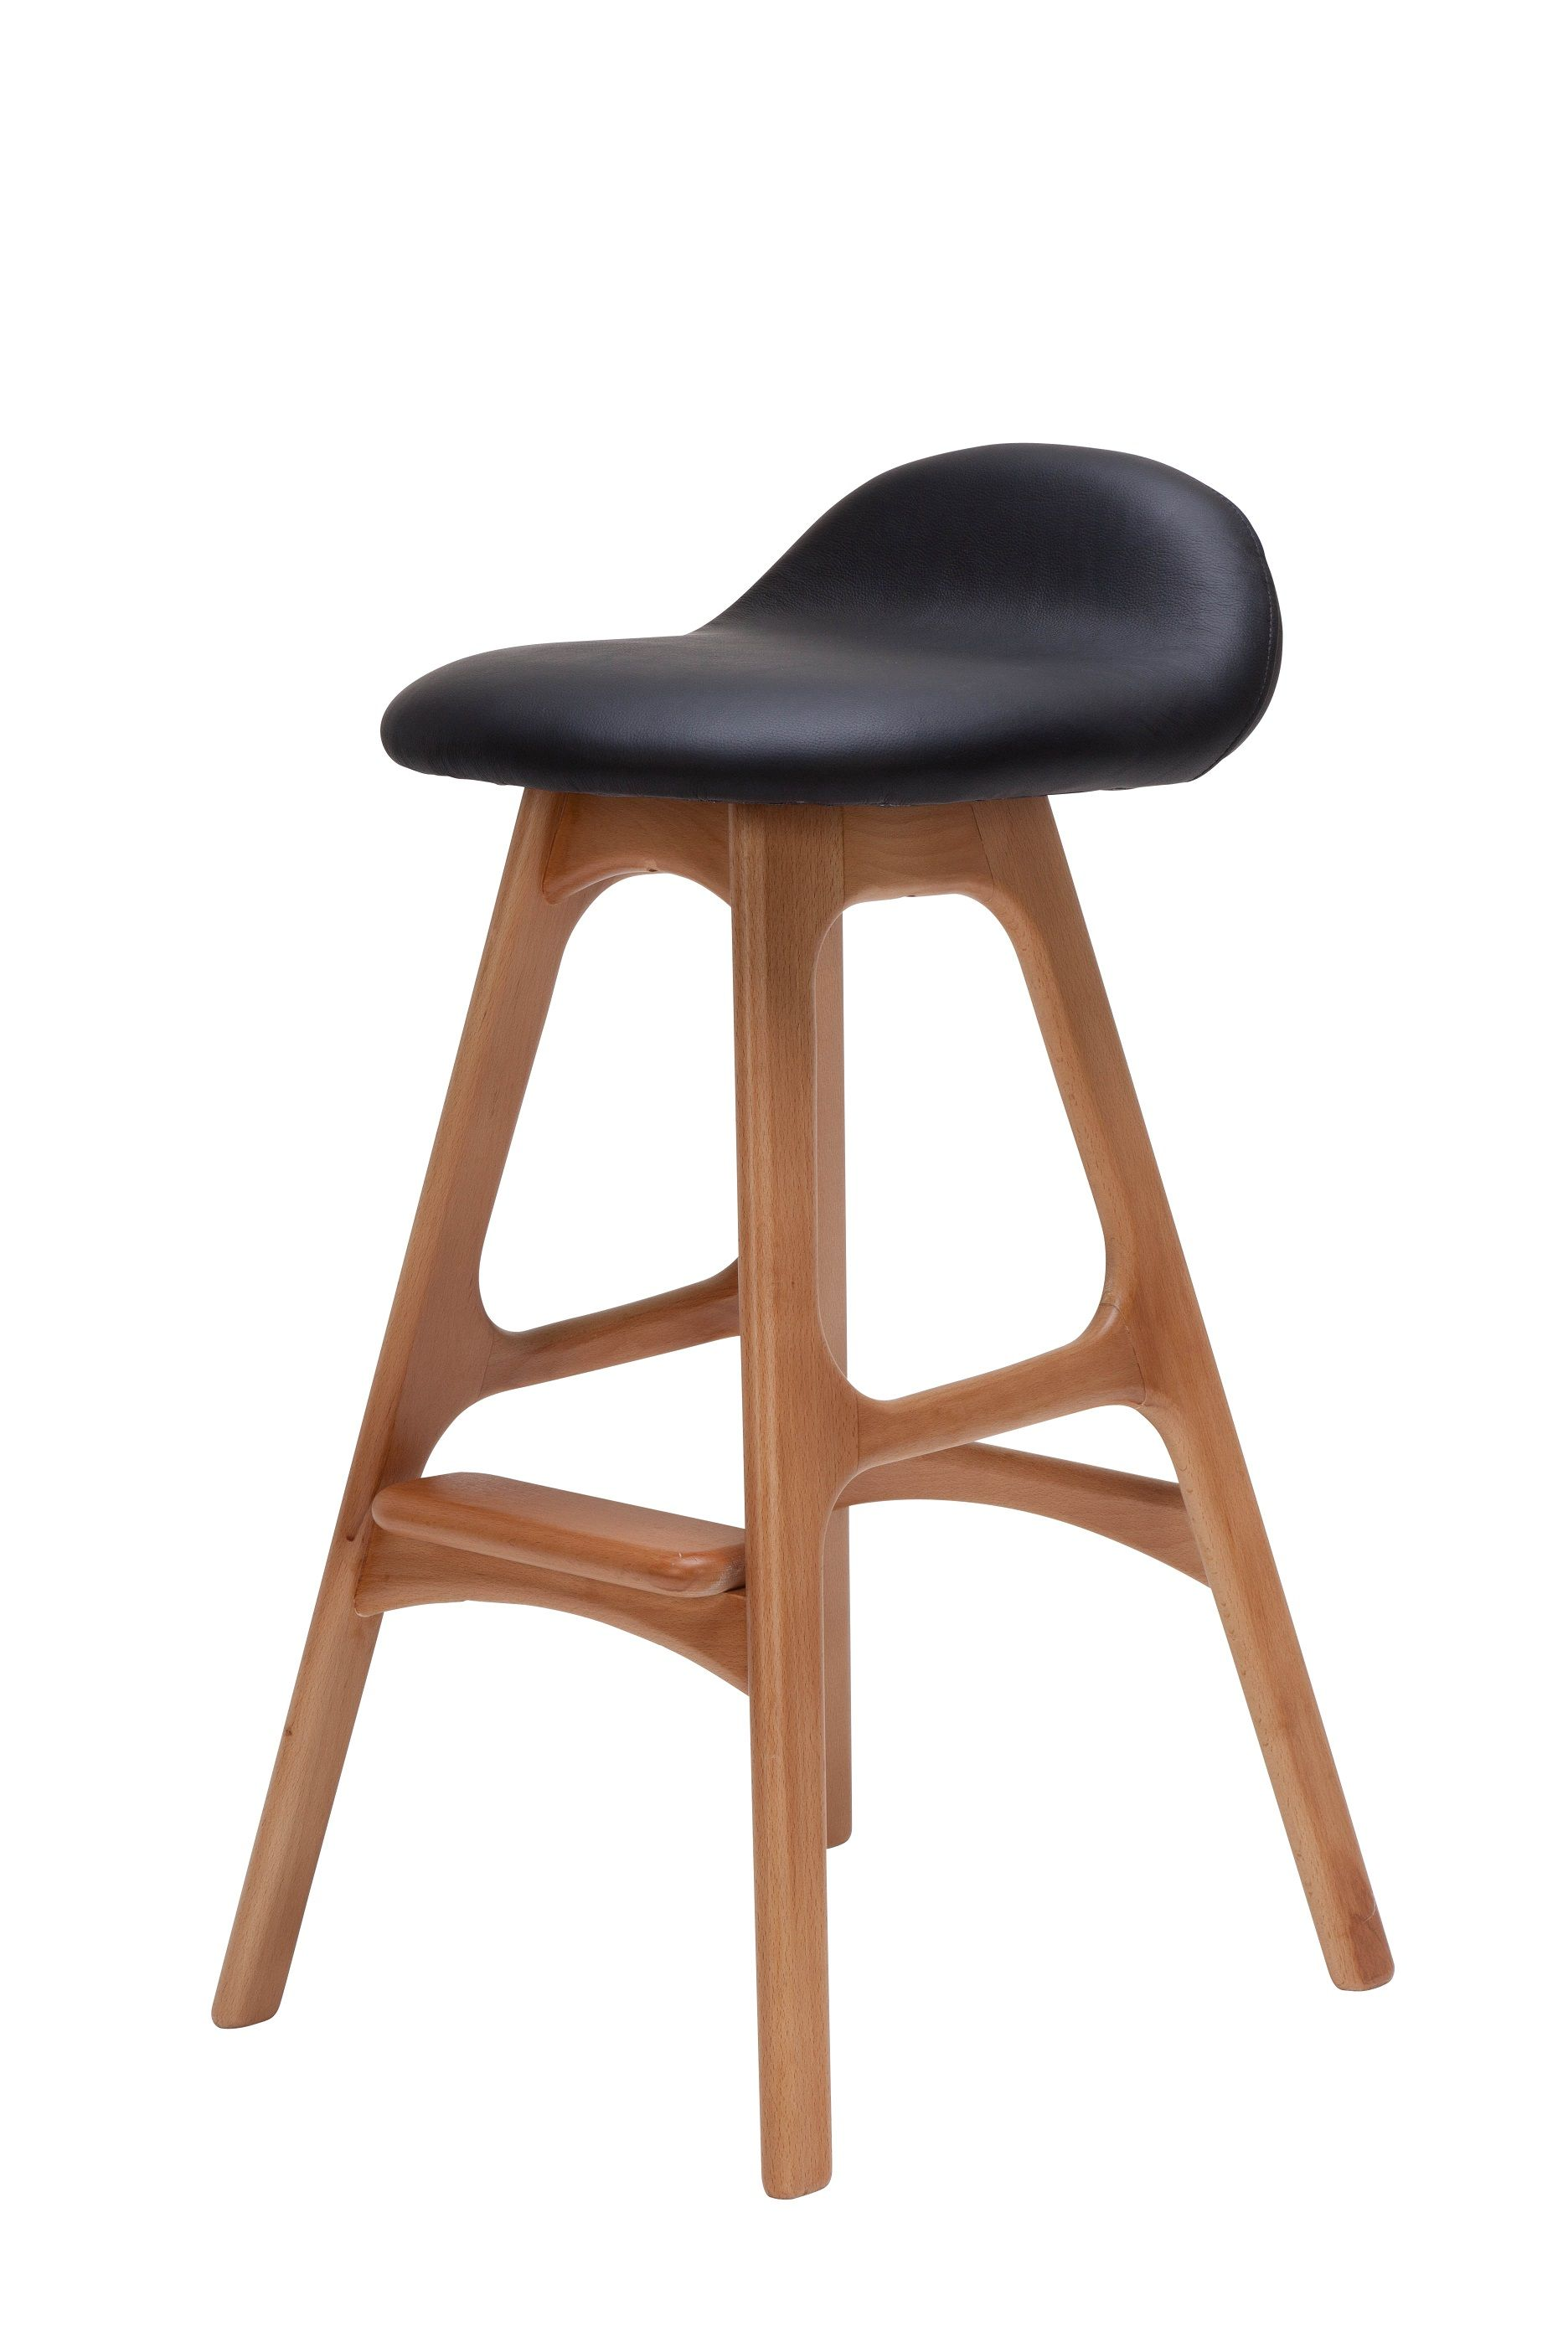 Minimalist Design Of Bar Stool Idea With Black Leatherette Top And Unique Wood Legs